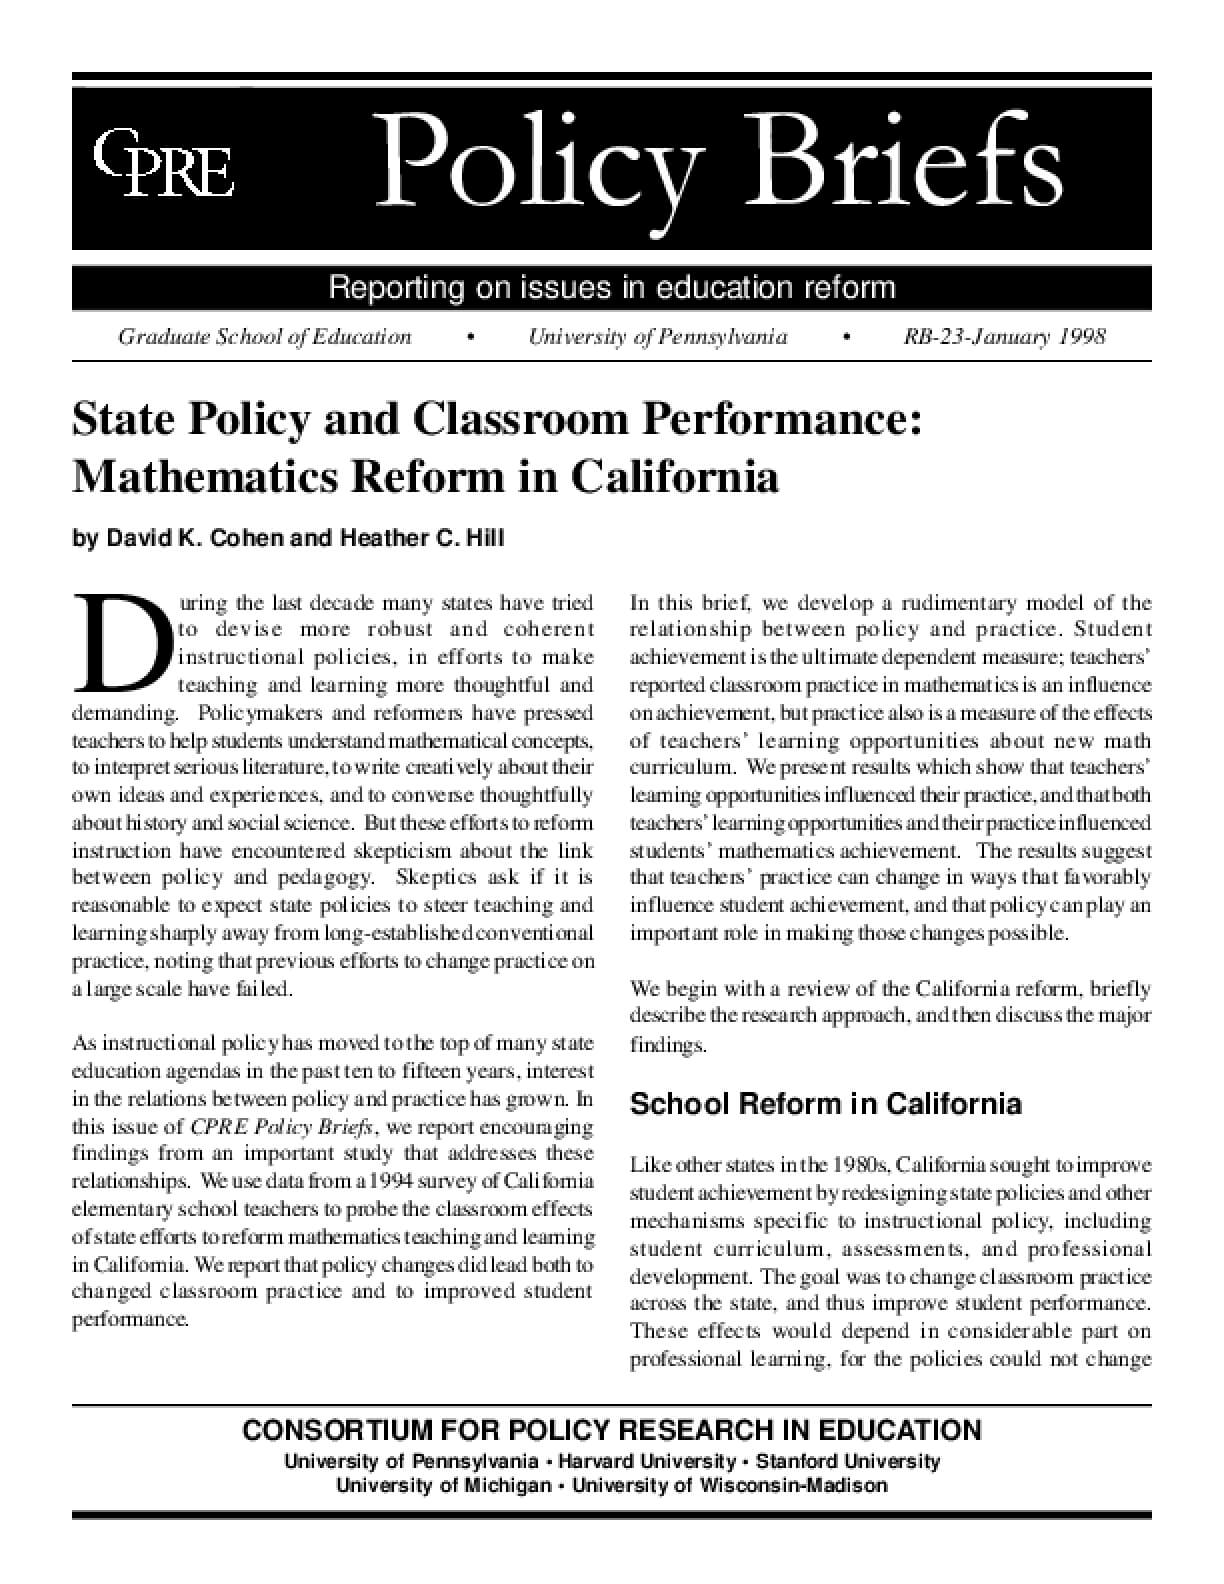 State Policy and Classroom Performance: Mathematics Reform in California